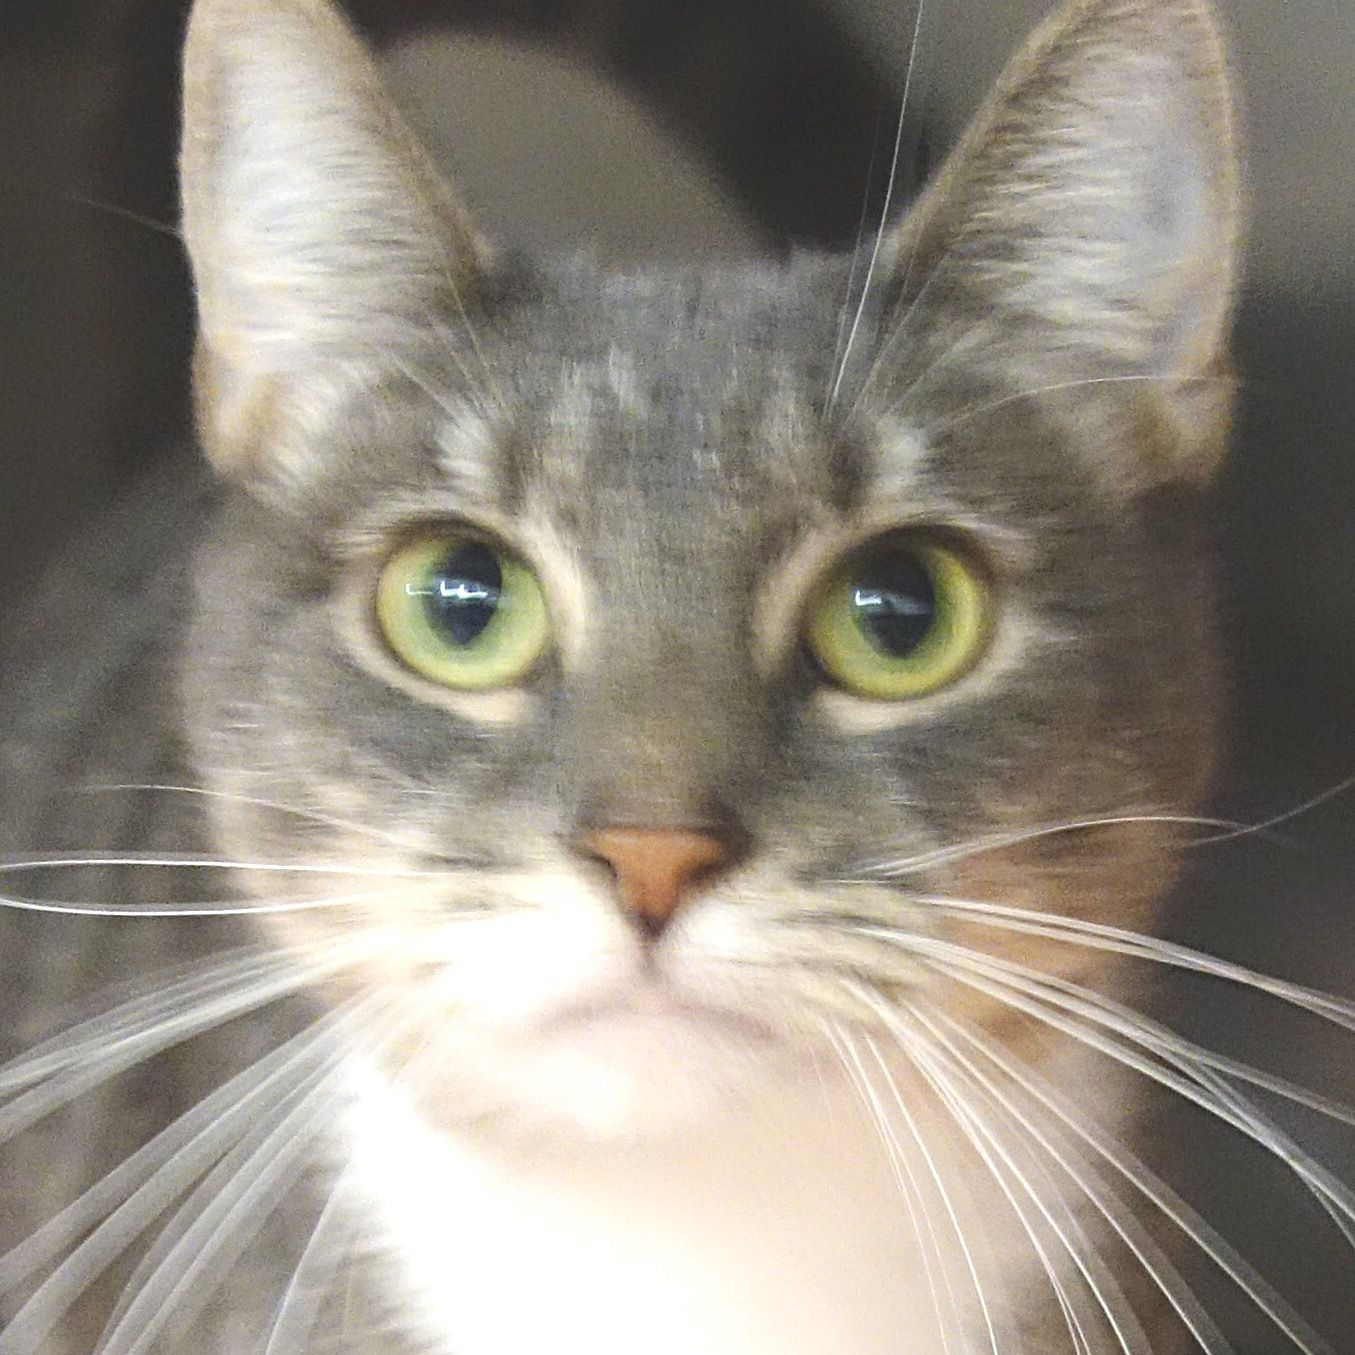 Spaz is an adoptable domestic short hair searching for a